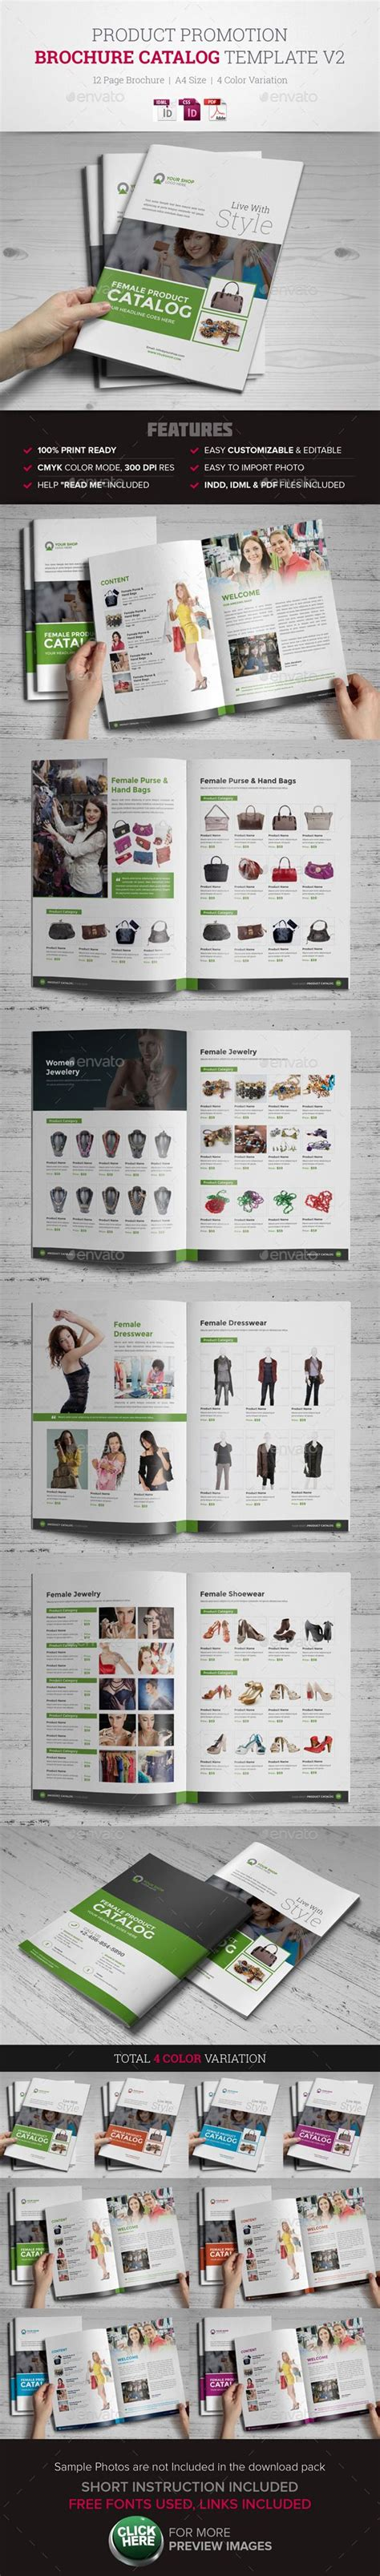 web layout indesign 25 best ideas about product catalog design on pinterest